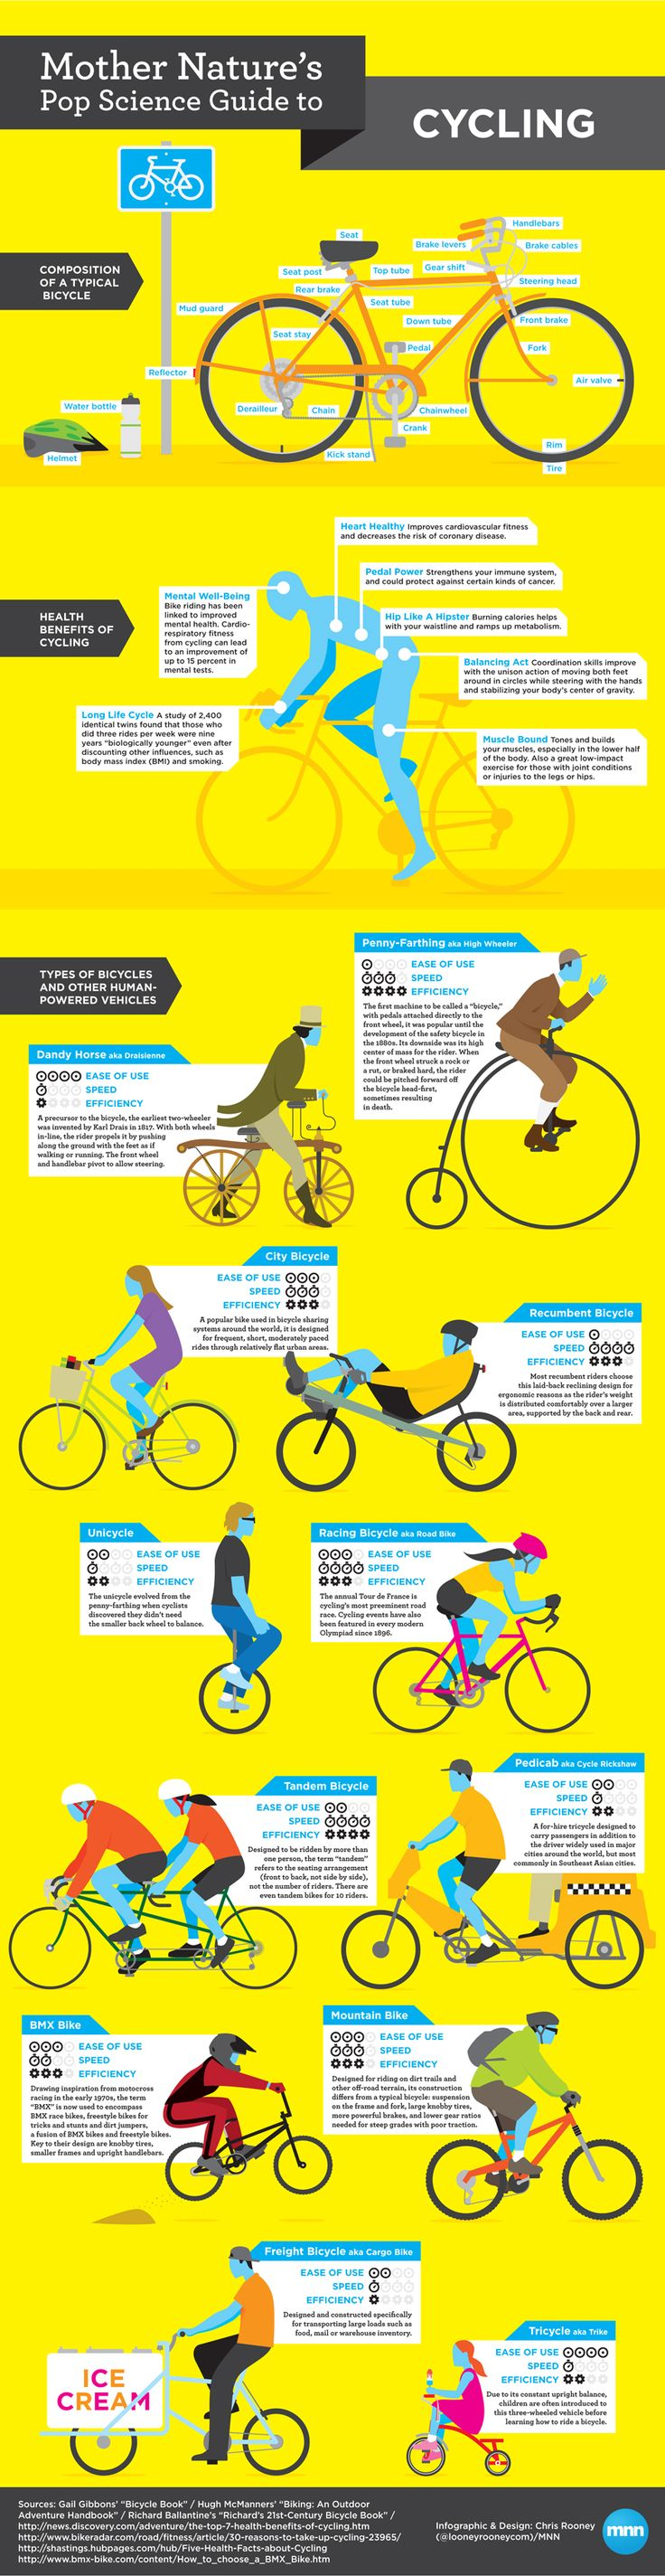 #Sustainability Tip 1: So you want to go green and cycle but have no clue where to start? This should help via Mother Nature network